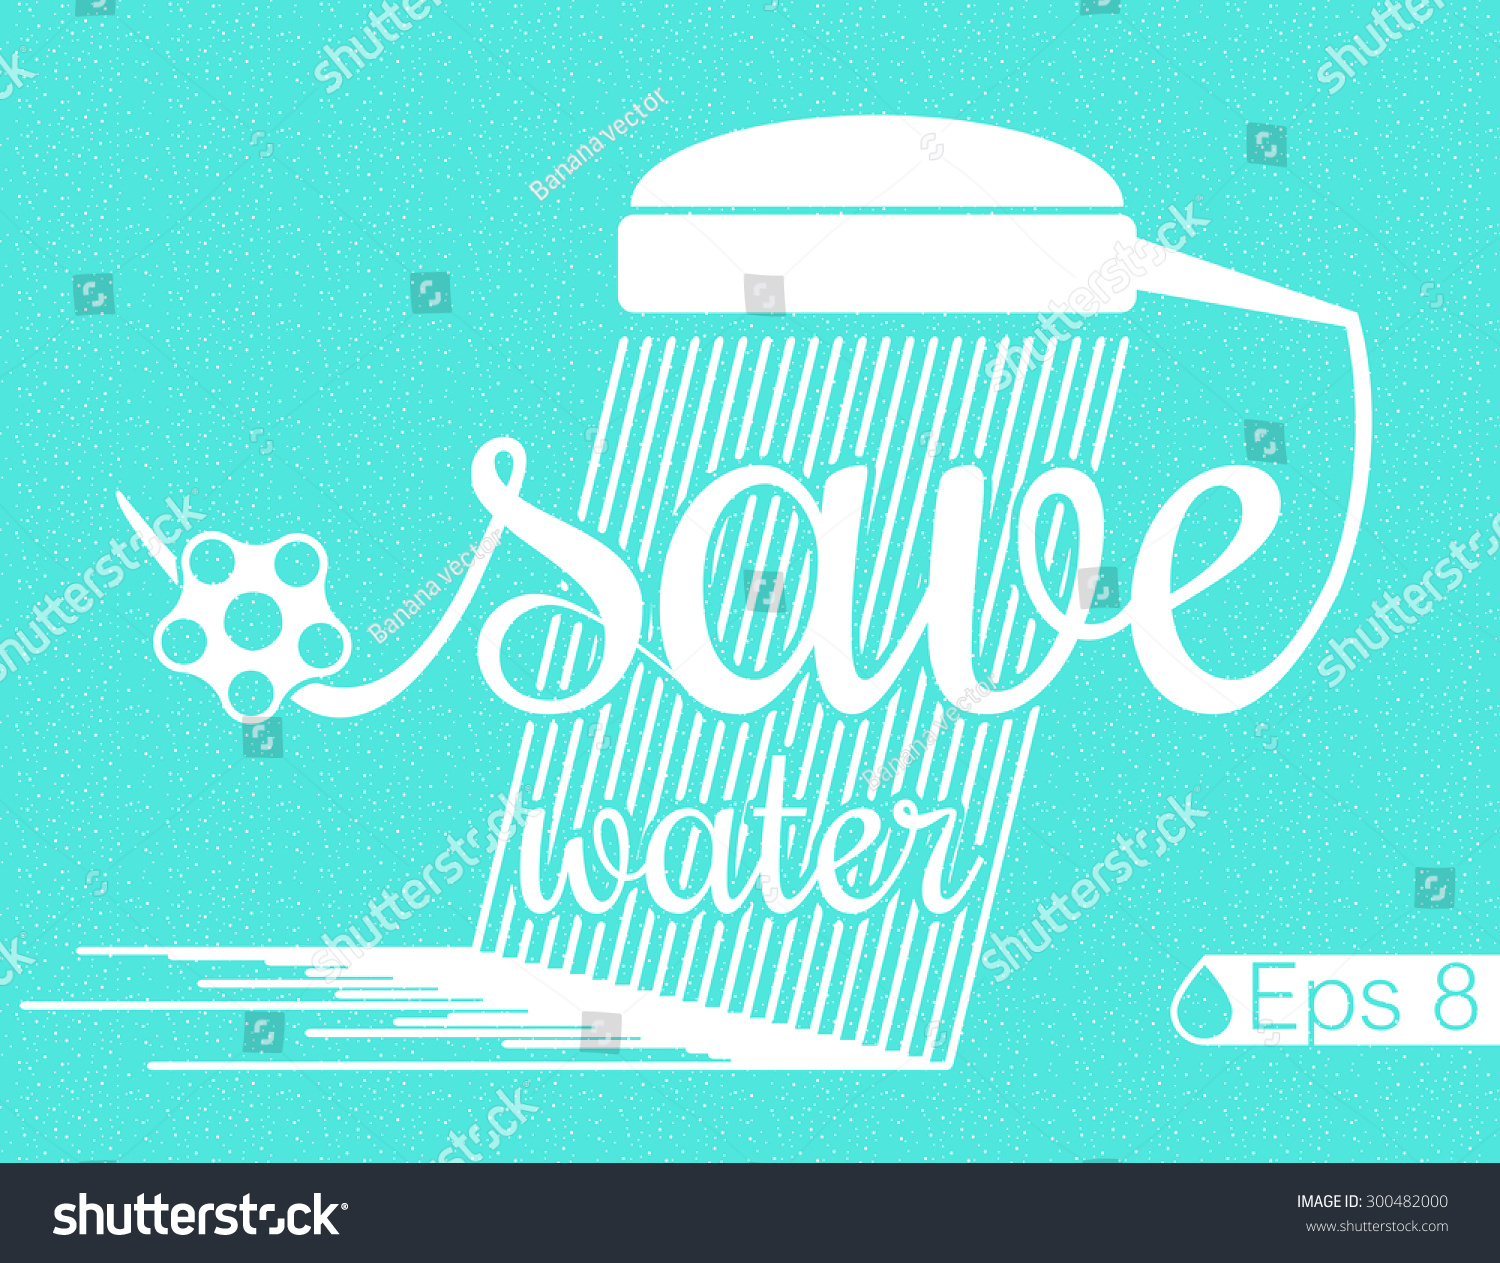 Poster design on save water - Vector Poster Minimal Design Save Water Eps 8